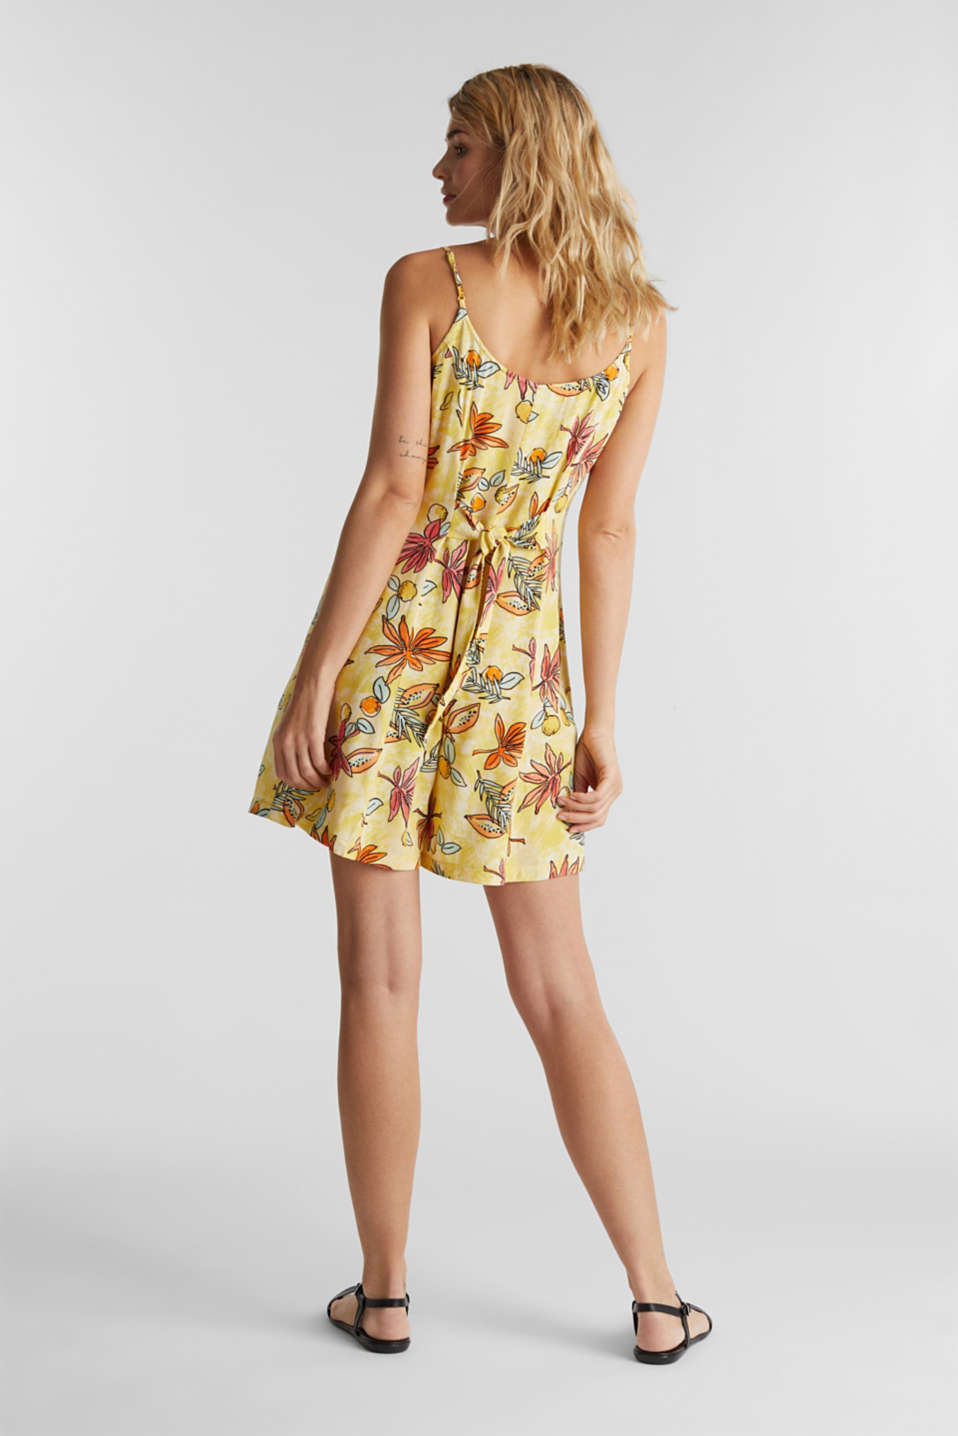 Woven playsuit with a fruit print, BRIGHT YELLOW 4, detail image number 3